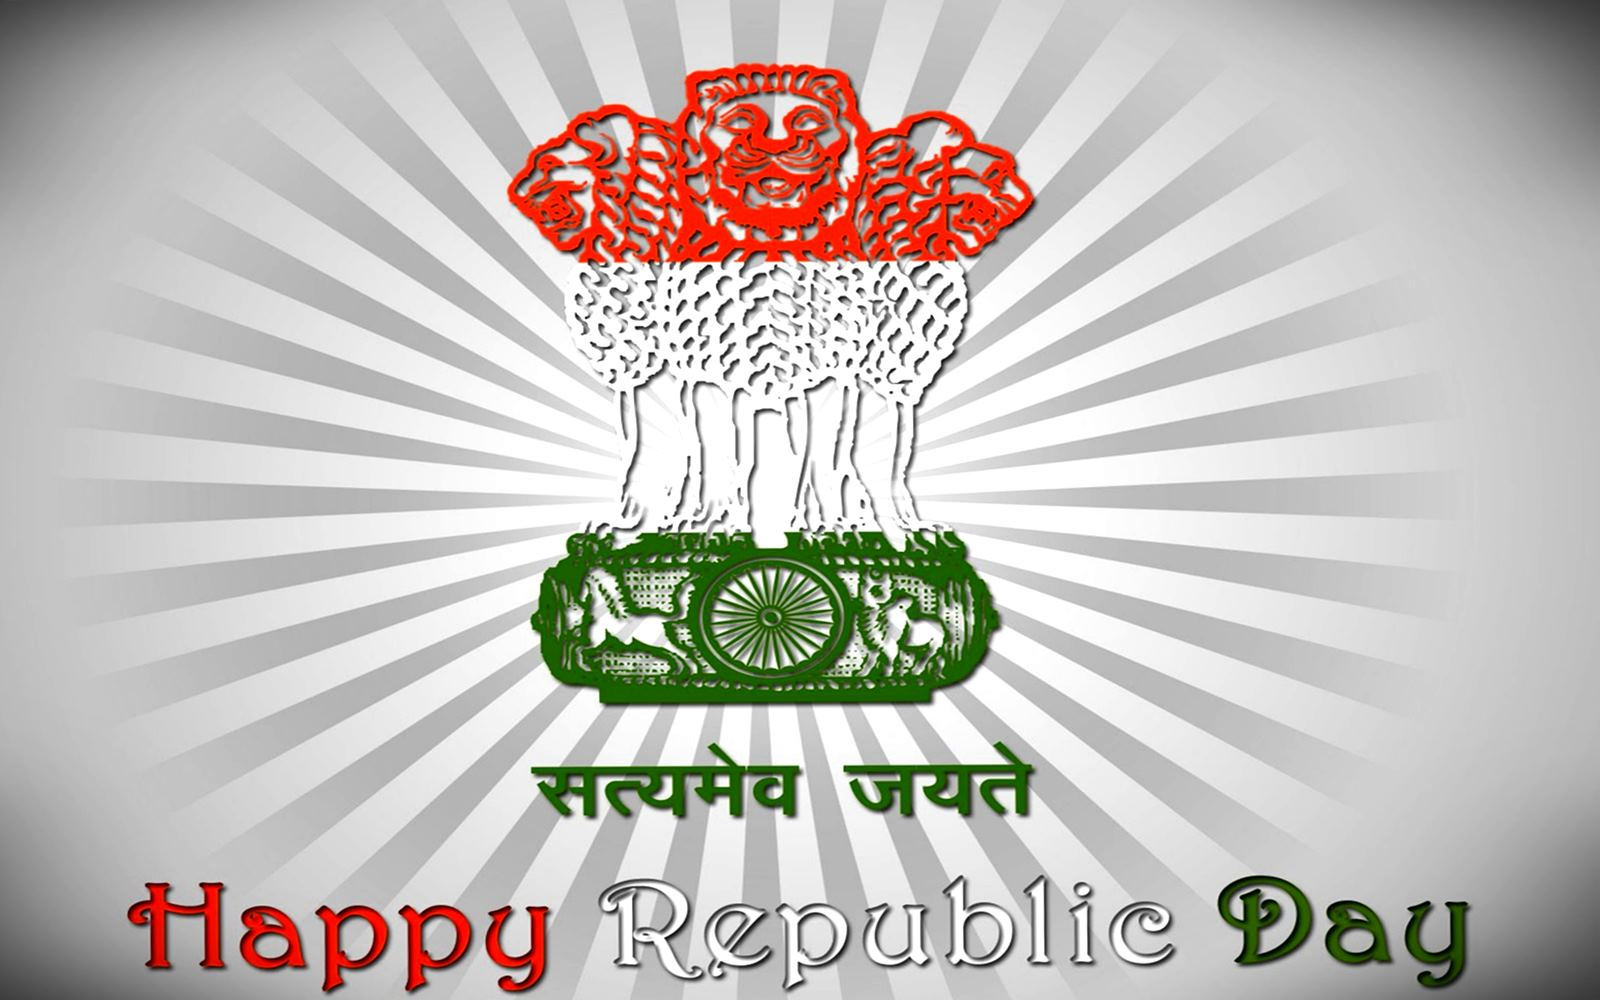 happy republic day hindi Wallpapers hd download